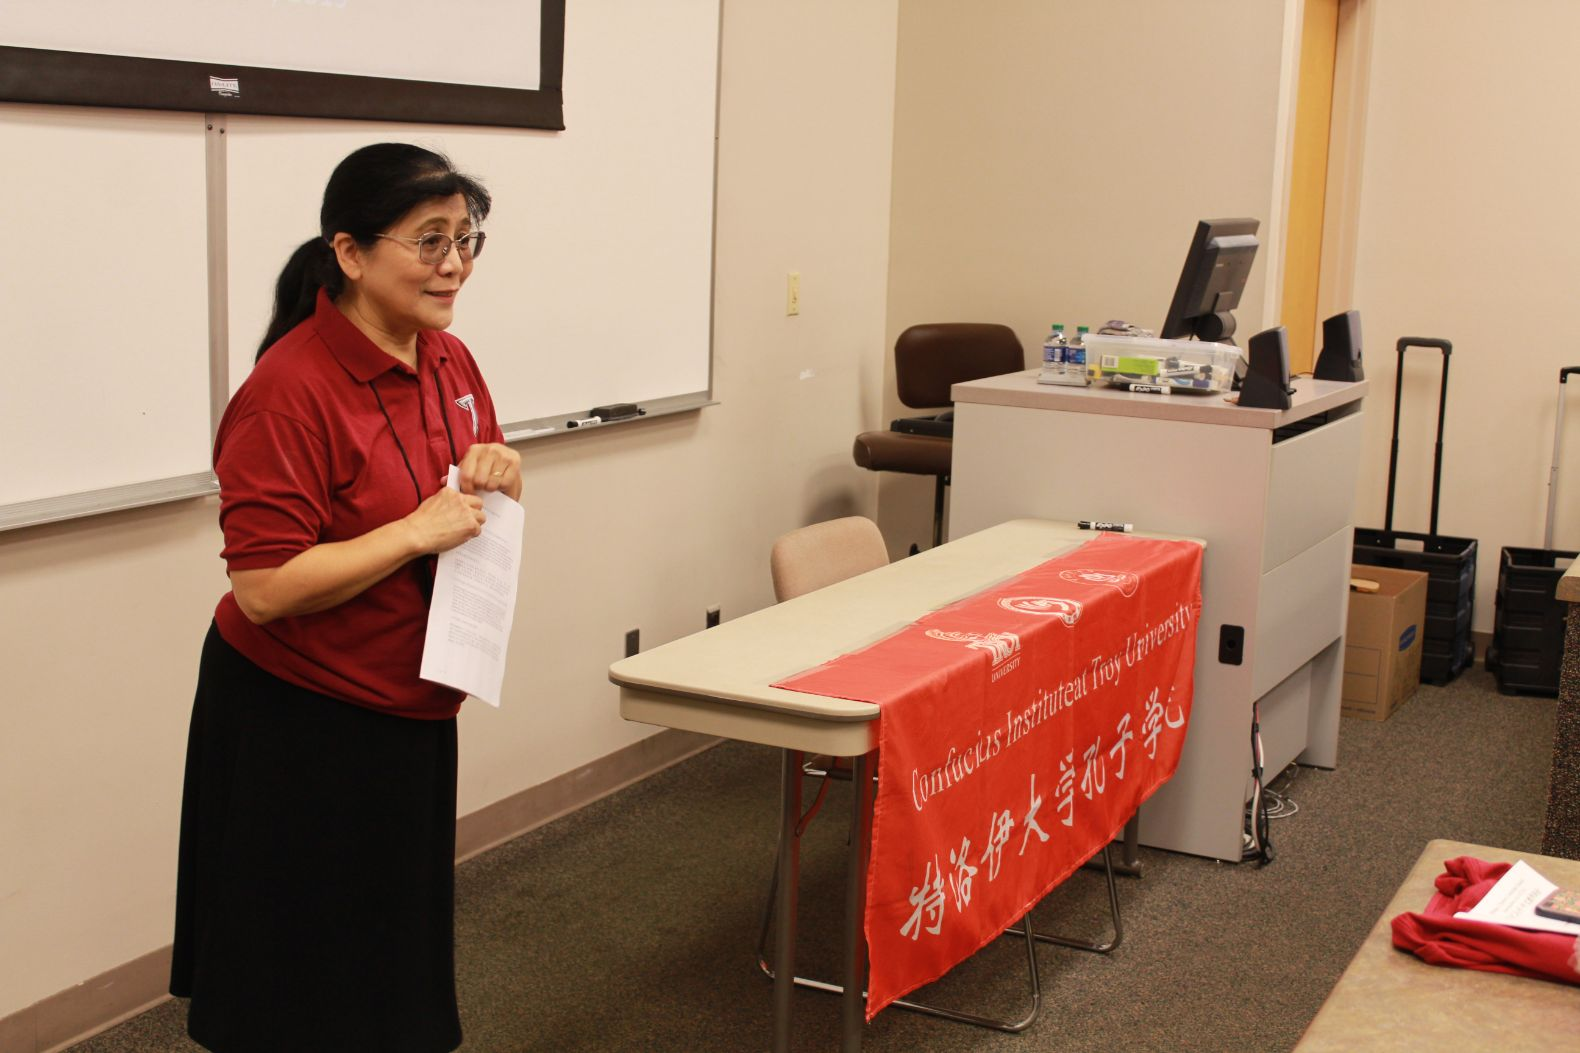 Dr. Xu gives a speech at the forum.